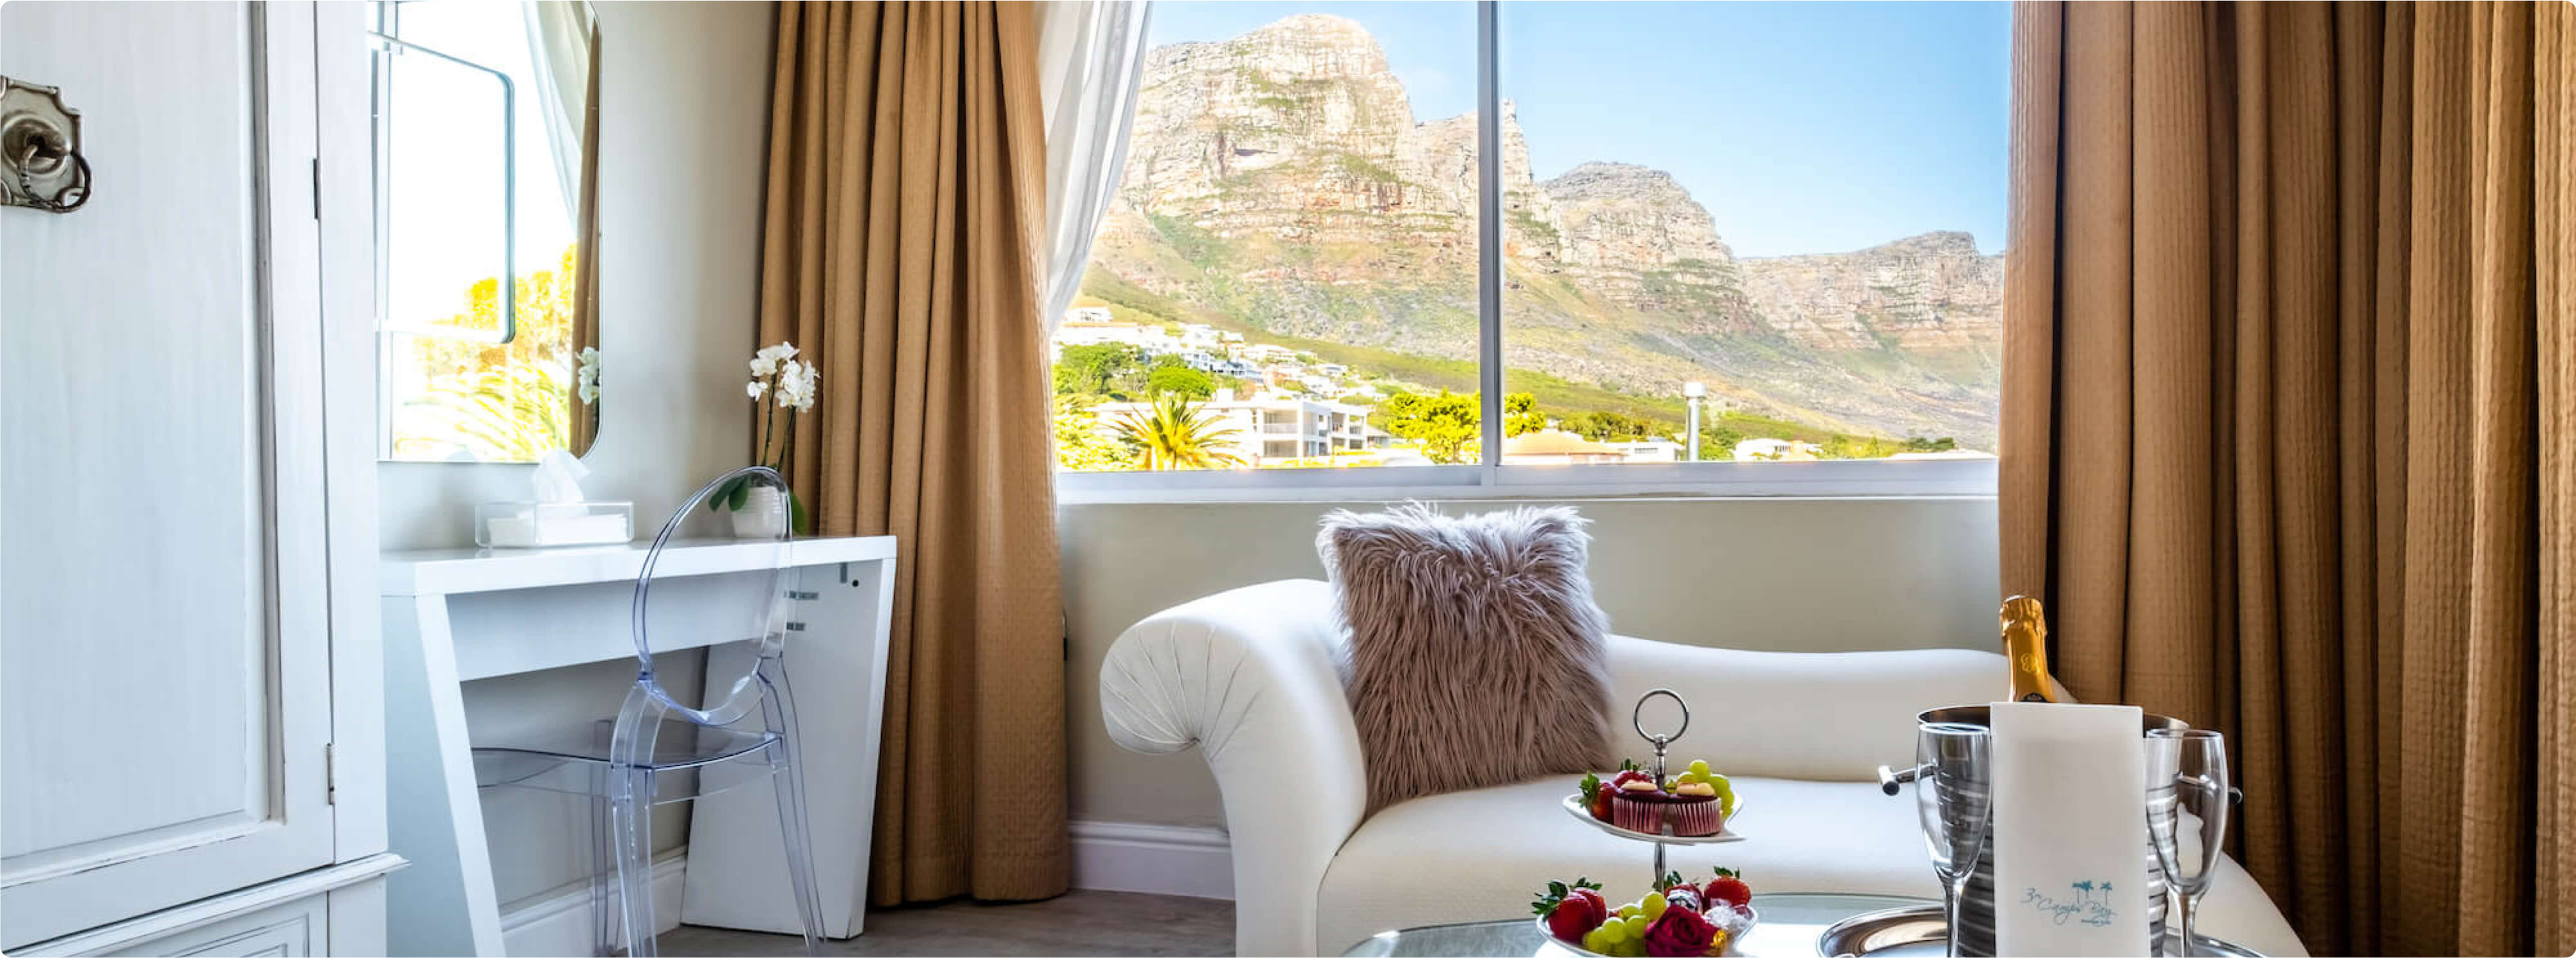 3 On Camps Bay - Executive Suite